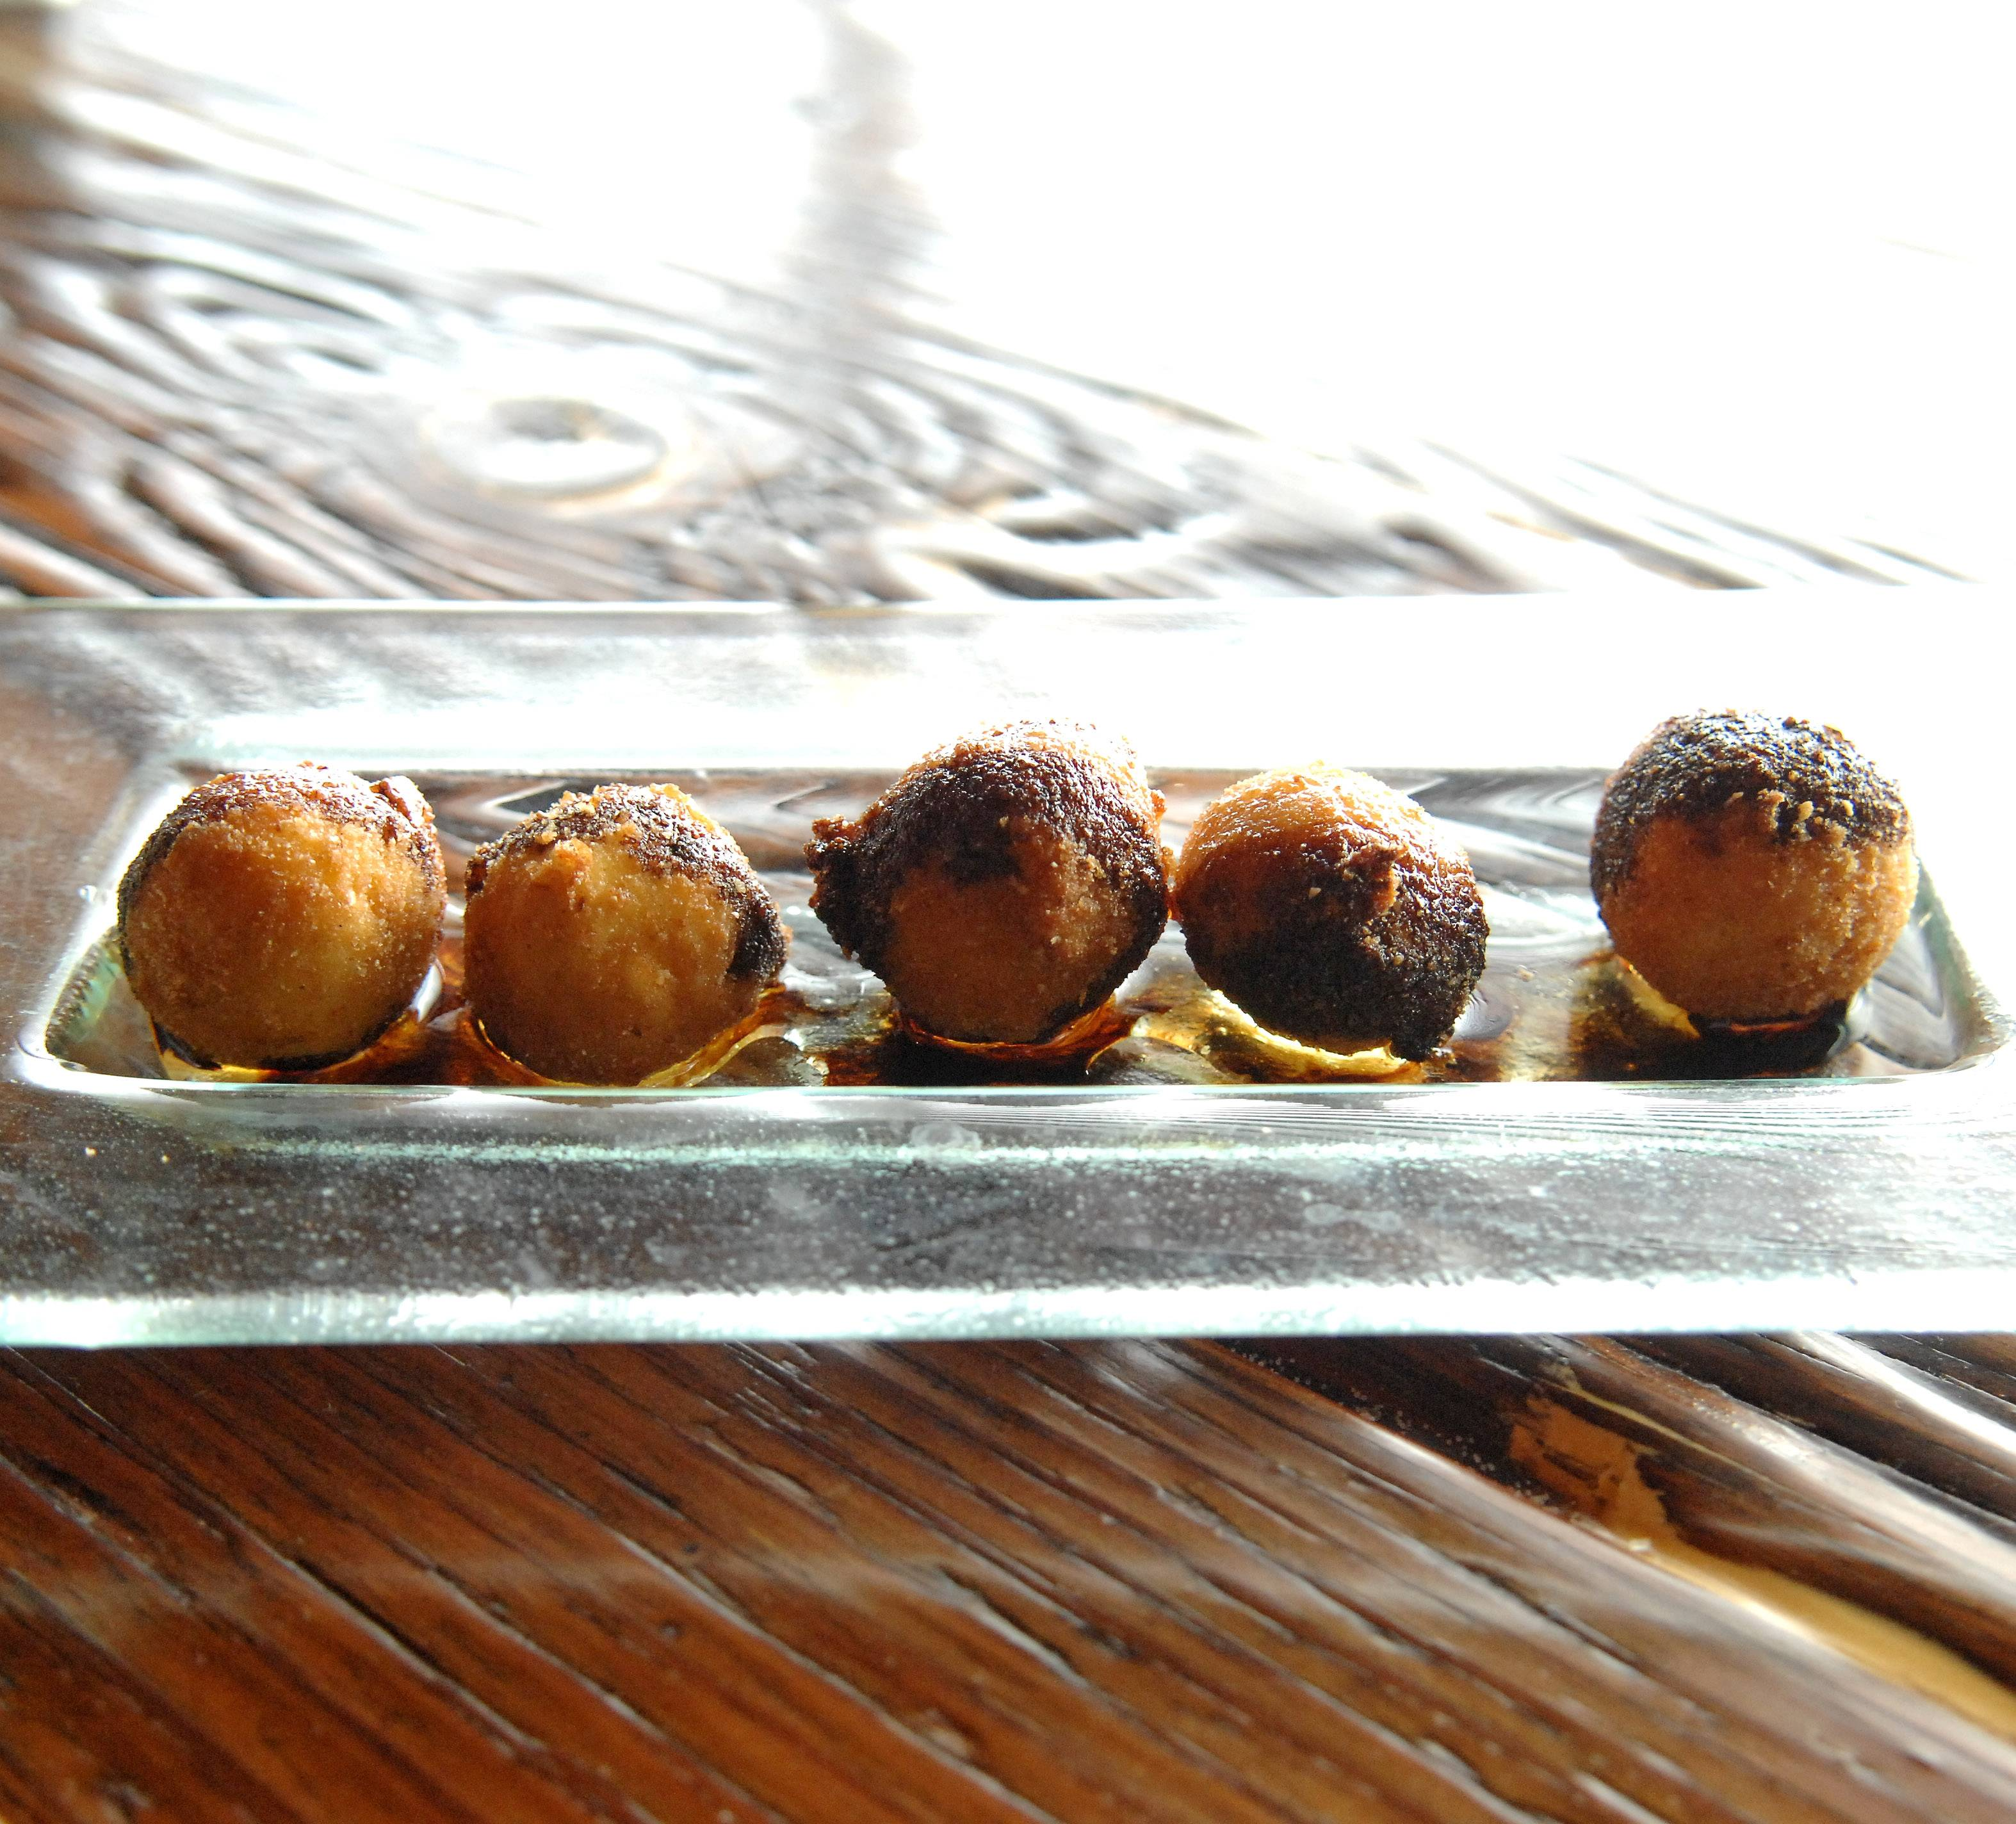 Croquetas de Queso de Cabra, or goat cheese fritters come topped with a honey and balsamic reduction at Macarena Tapas in St. Charles.